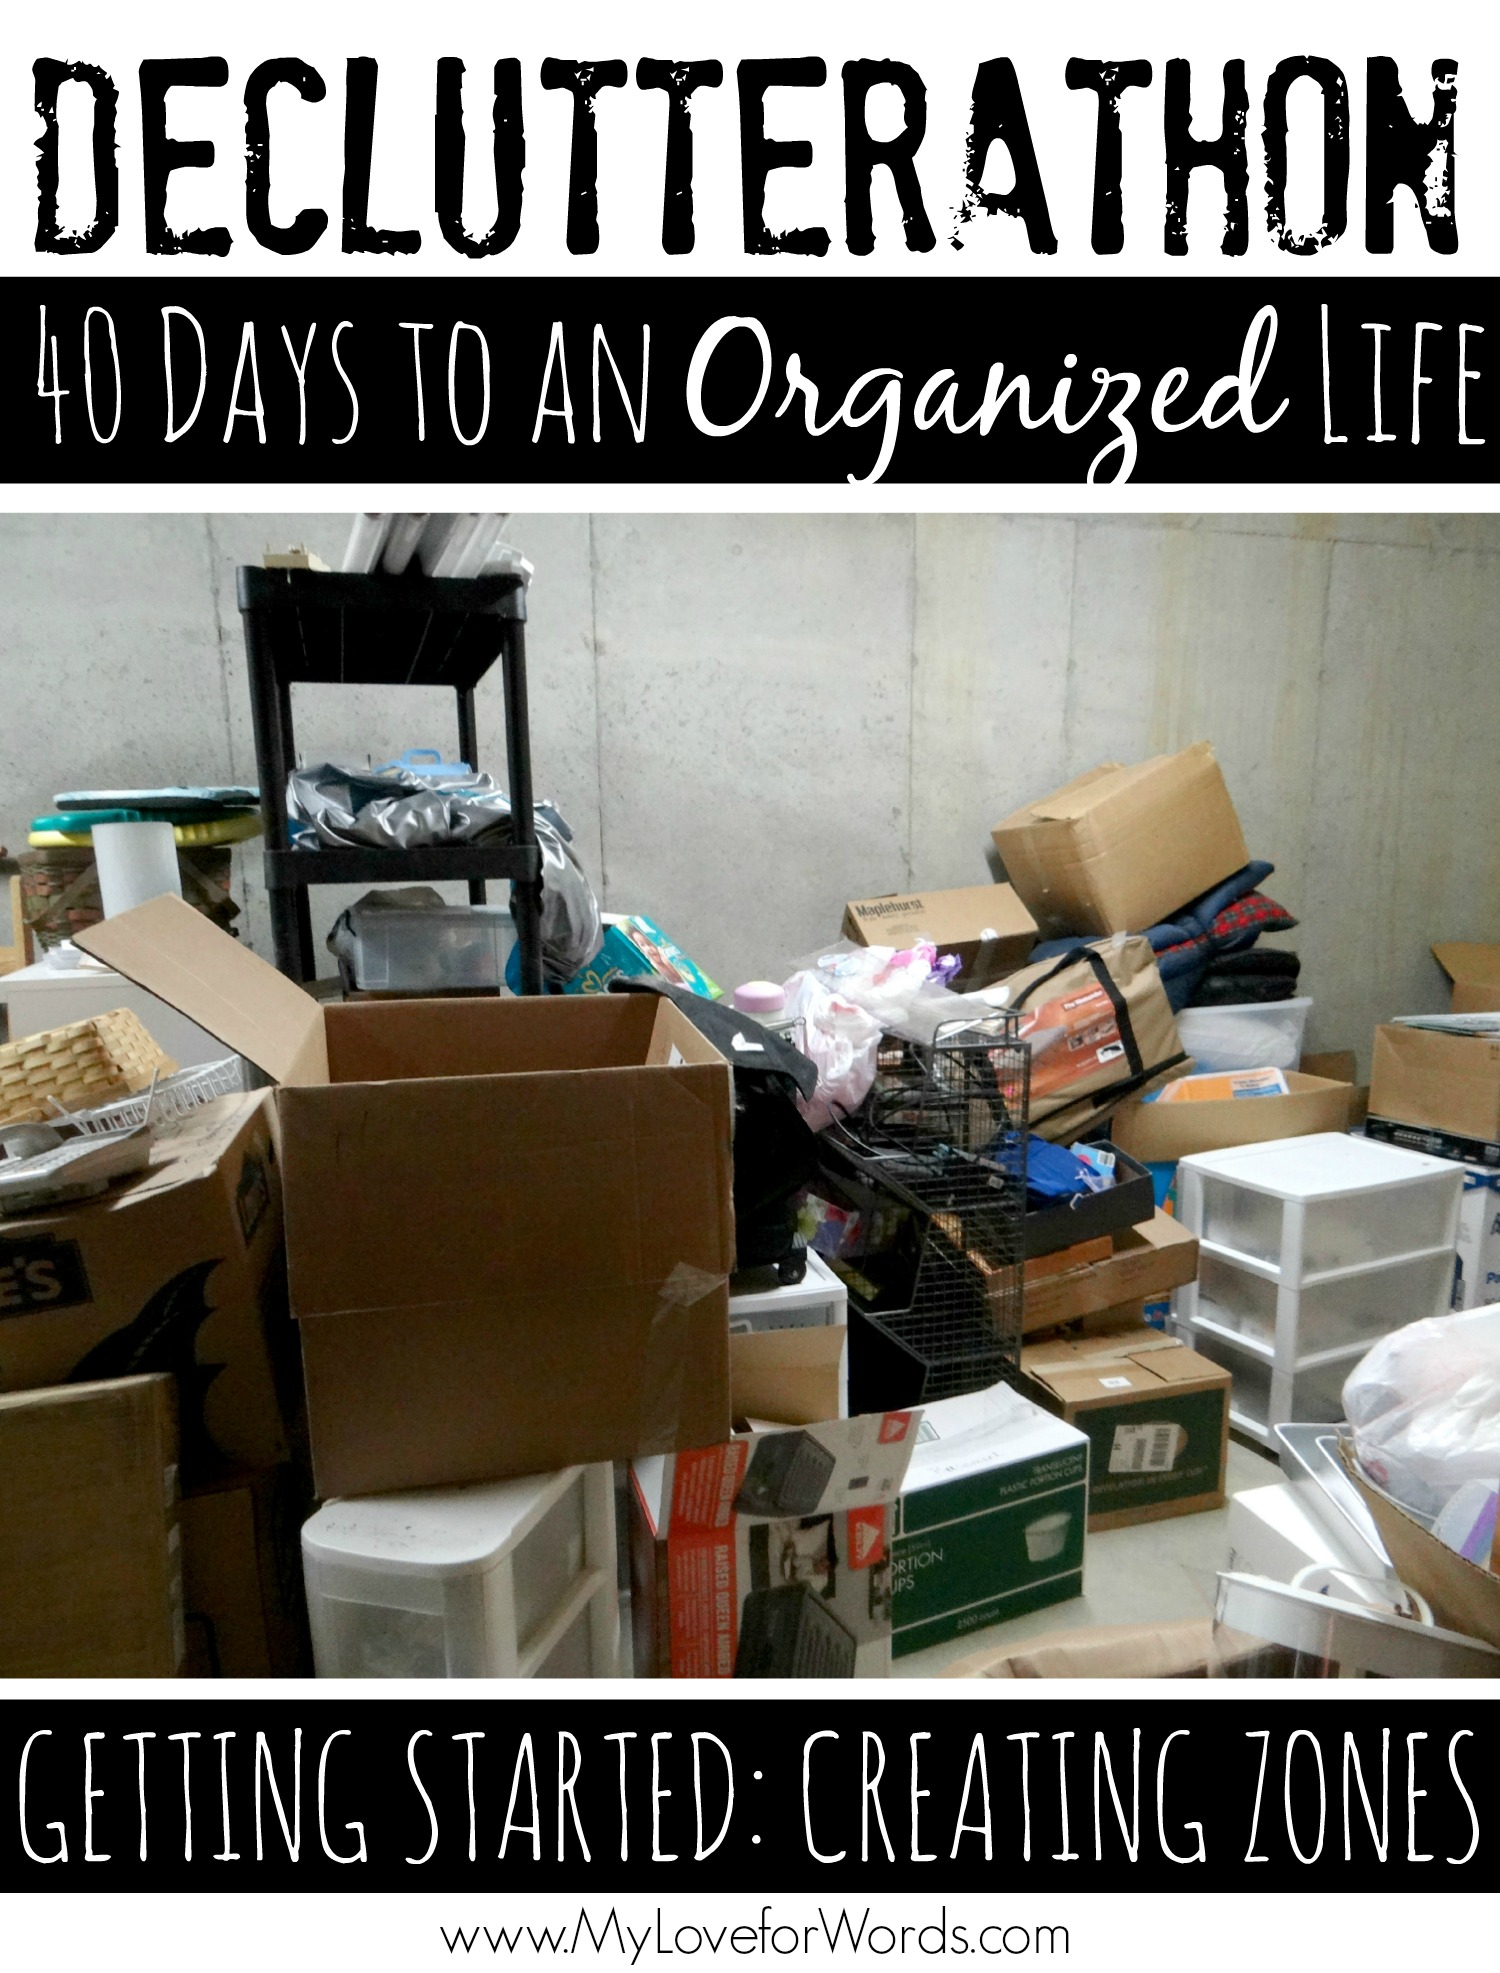 Declutterathon: Getting Started with 40 Bags in 40 Days #40Bagsin40Days #Declutterathon